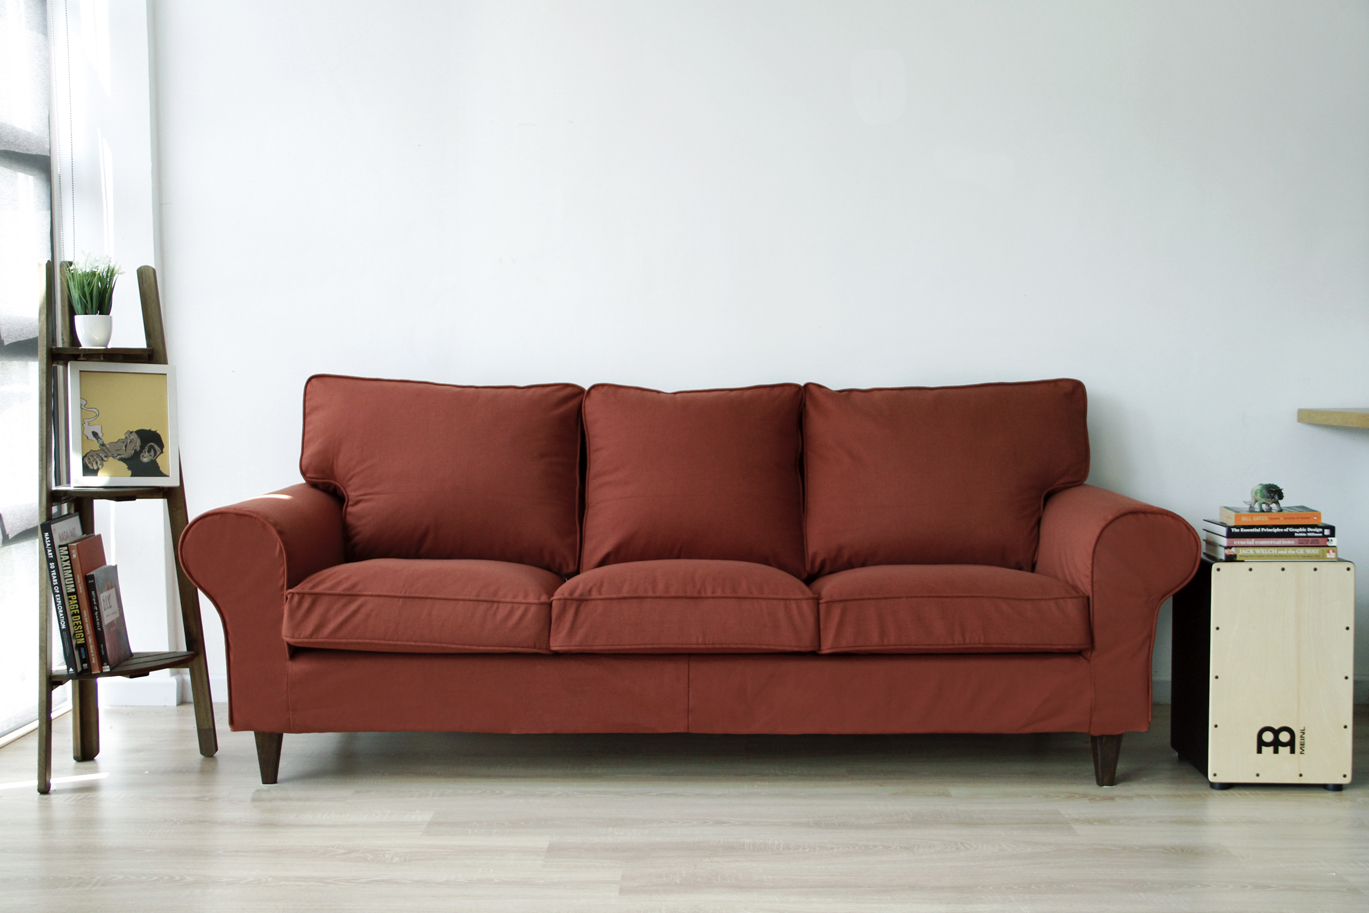 Fitted Slipcovers Couches How Do I Find A Slipcover That Fits My Sofa A Buying Guide